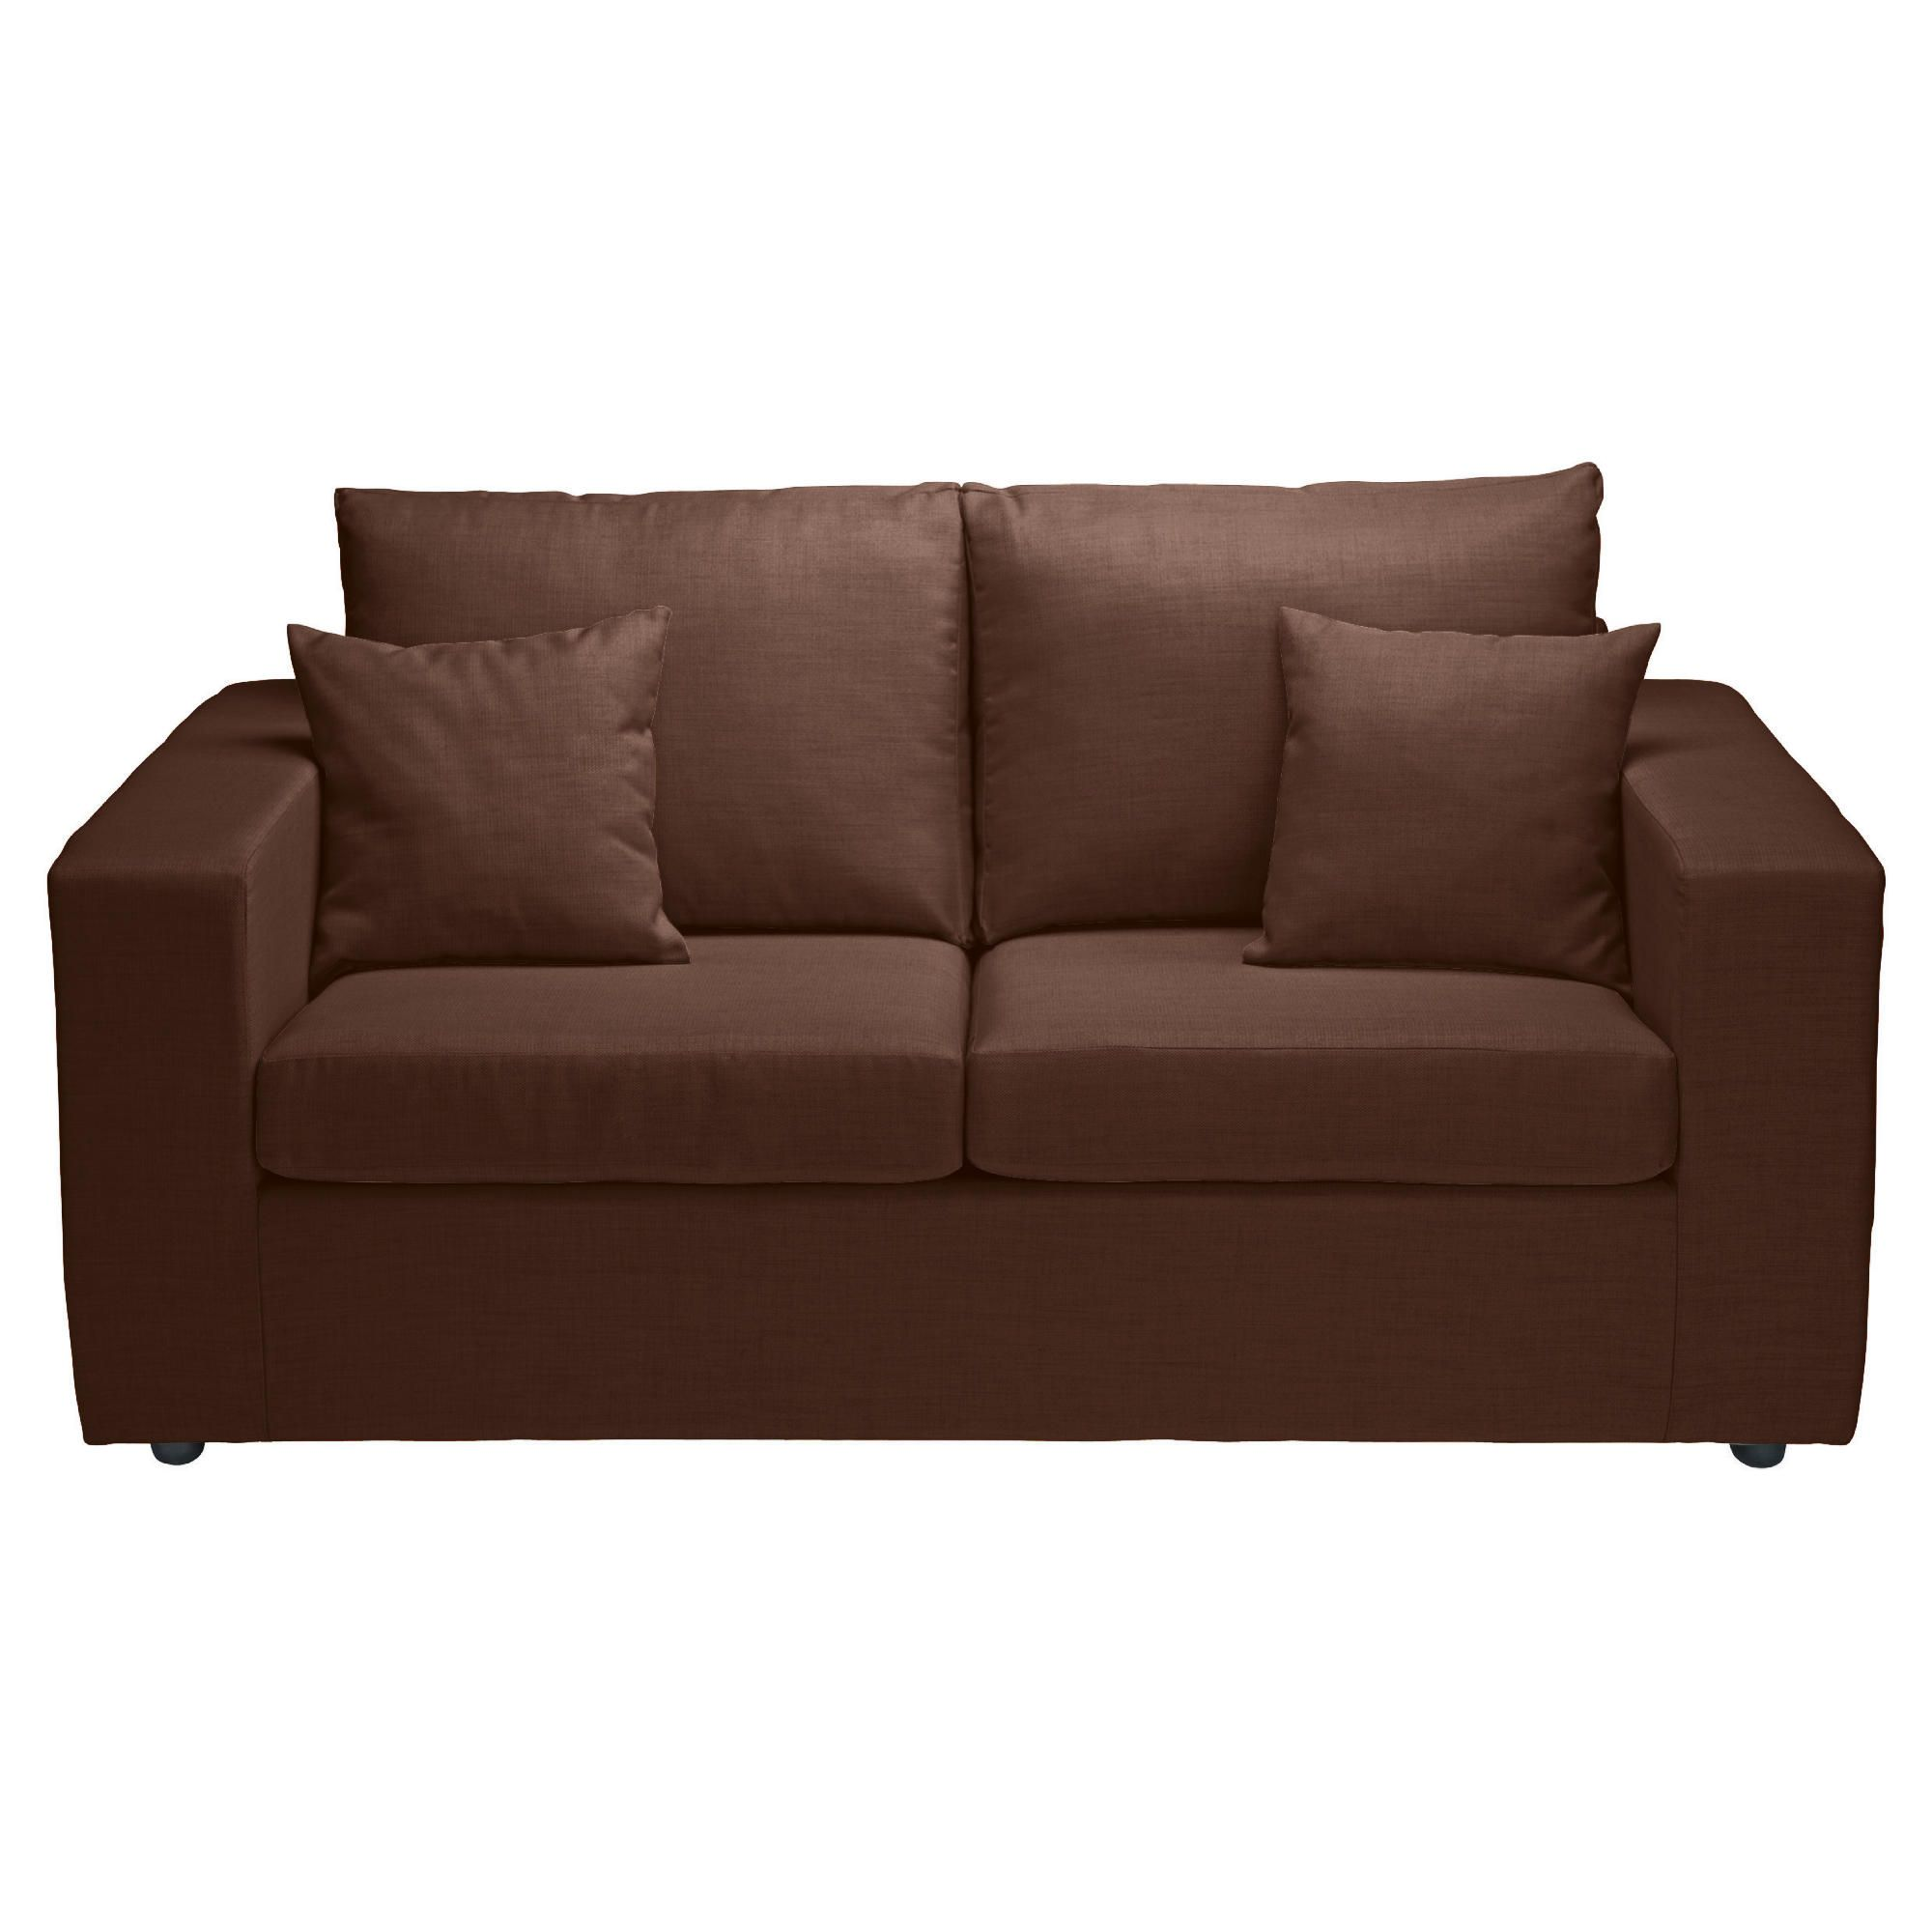 Maison Fabric Sofa Bed, Chocolate at Tesco Direct